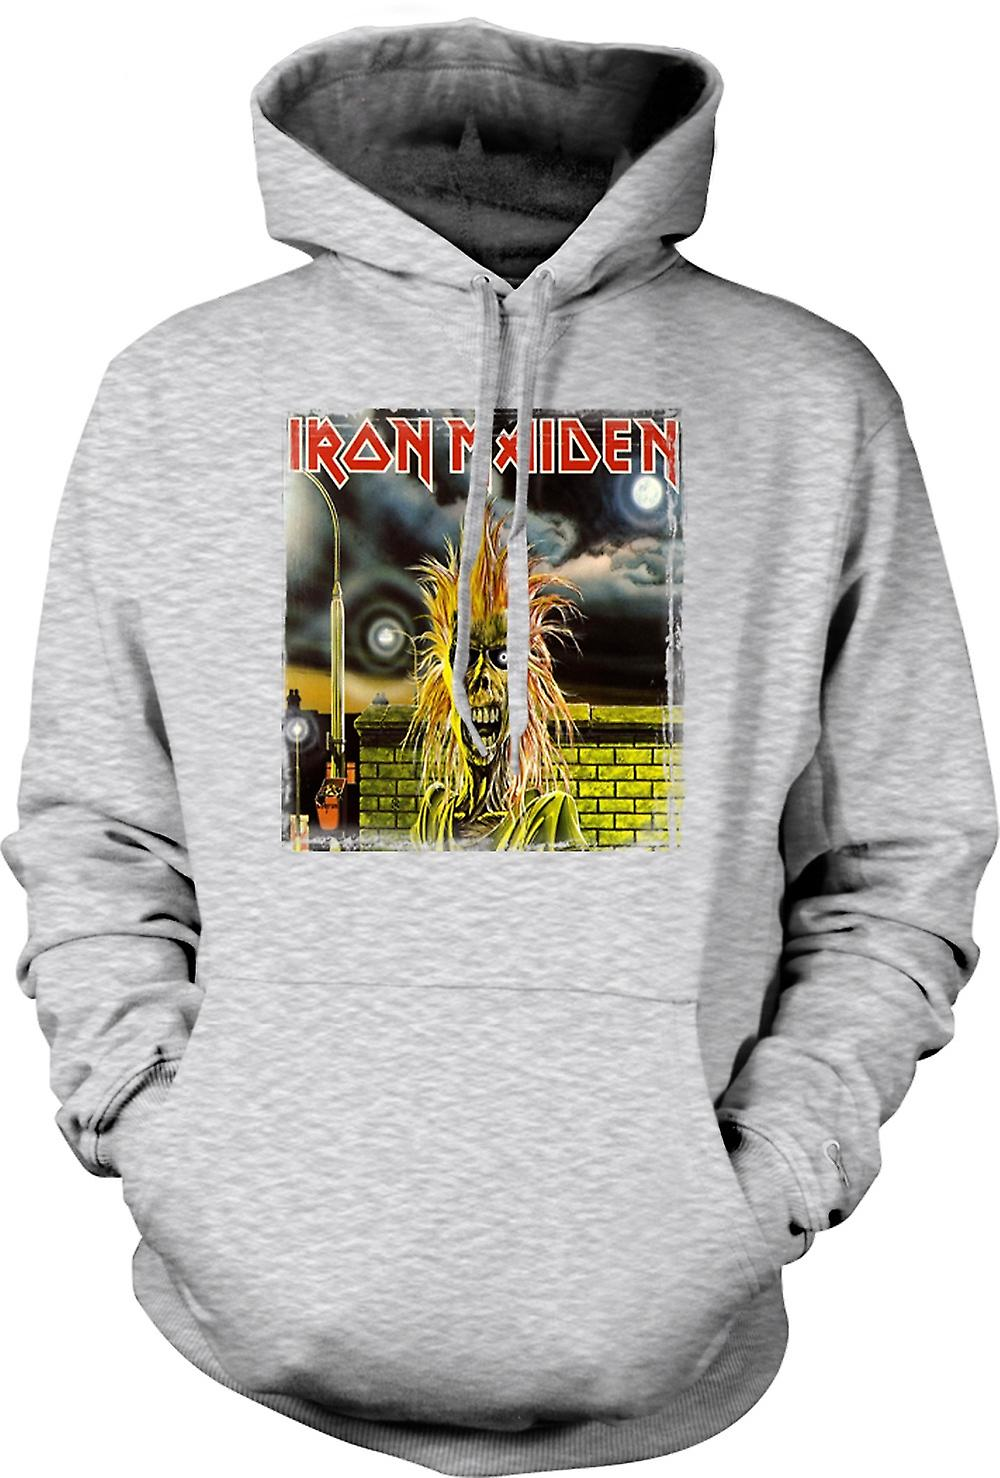 Mens Hoodie - Iron Maiden - Album Art